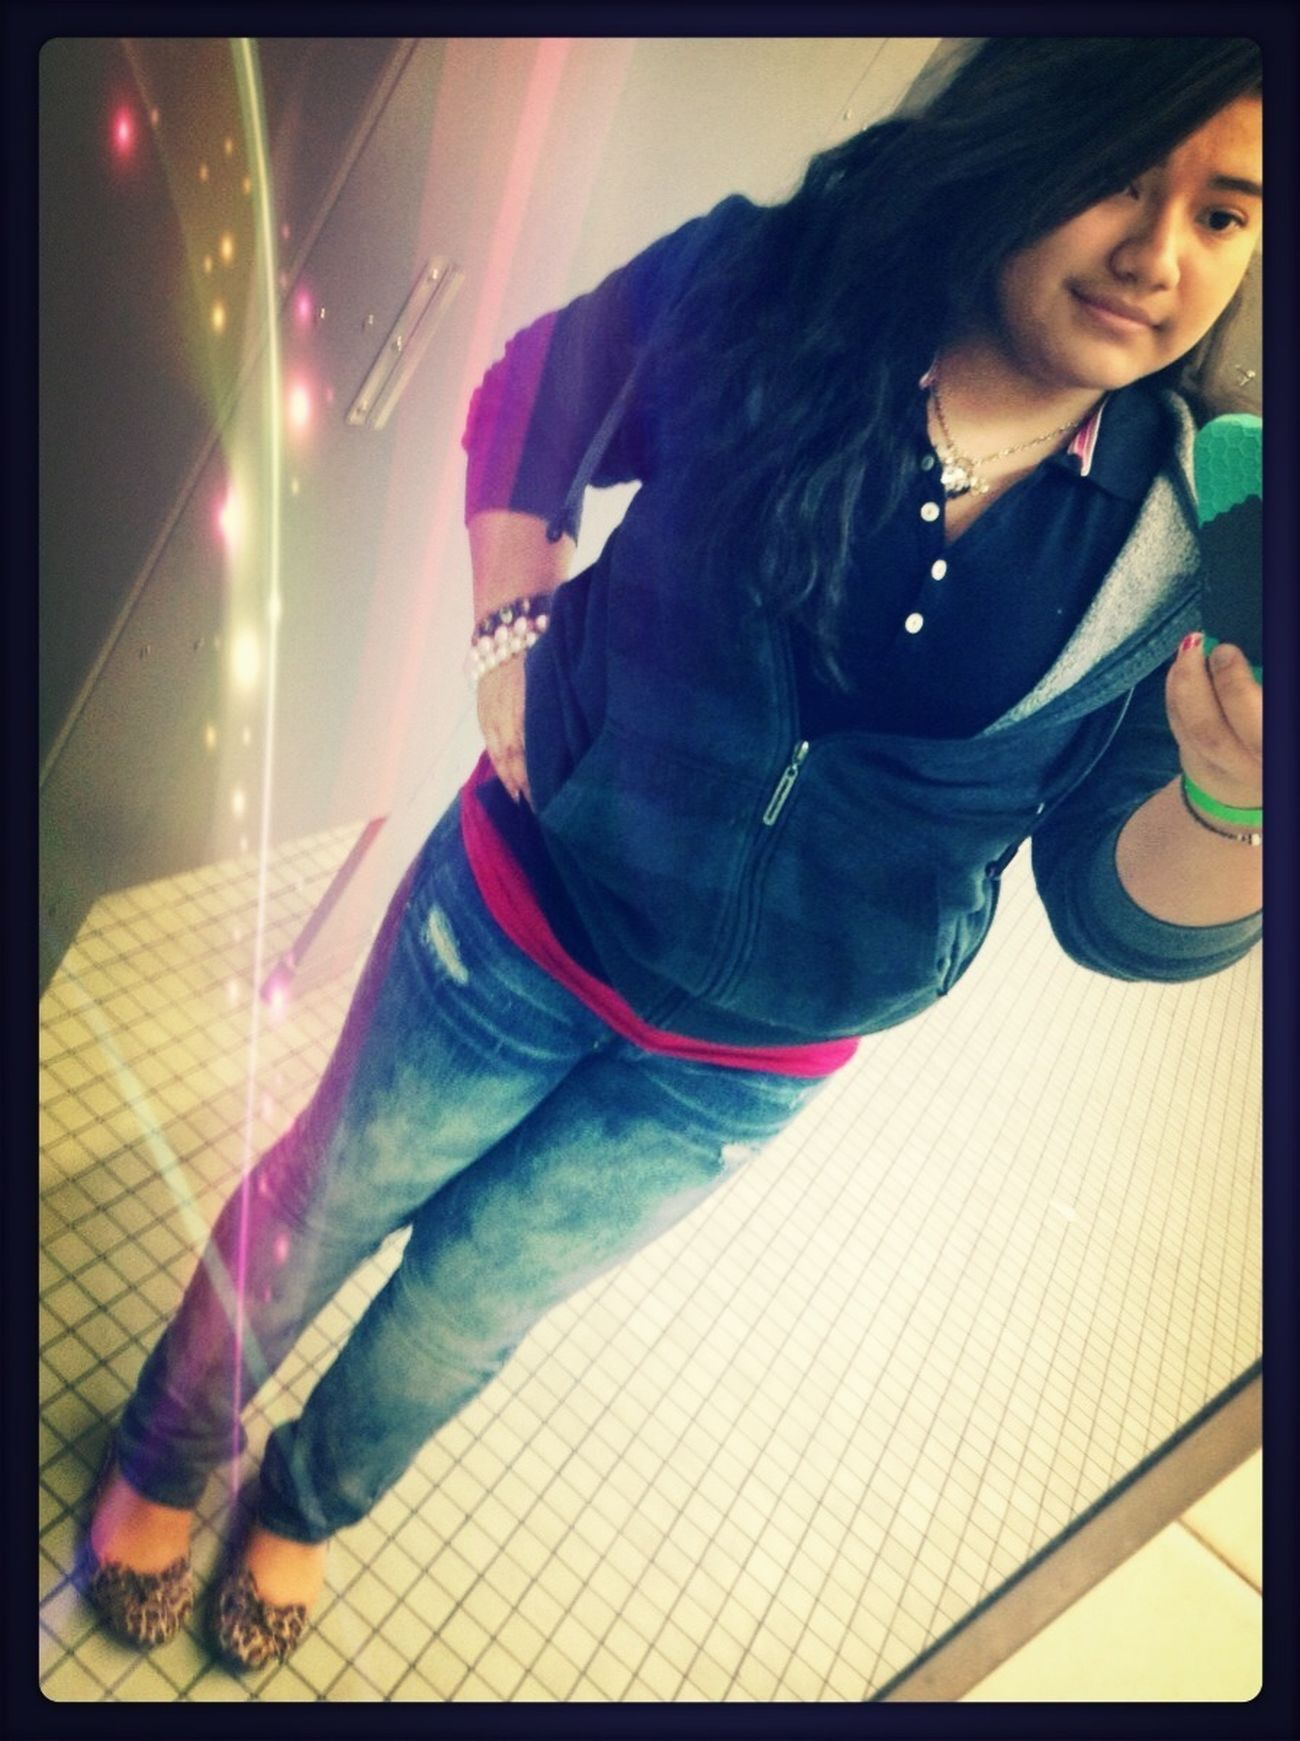 On Friday ^.^